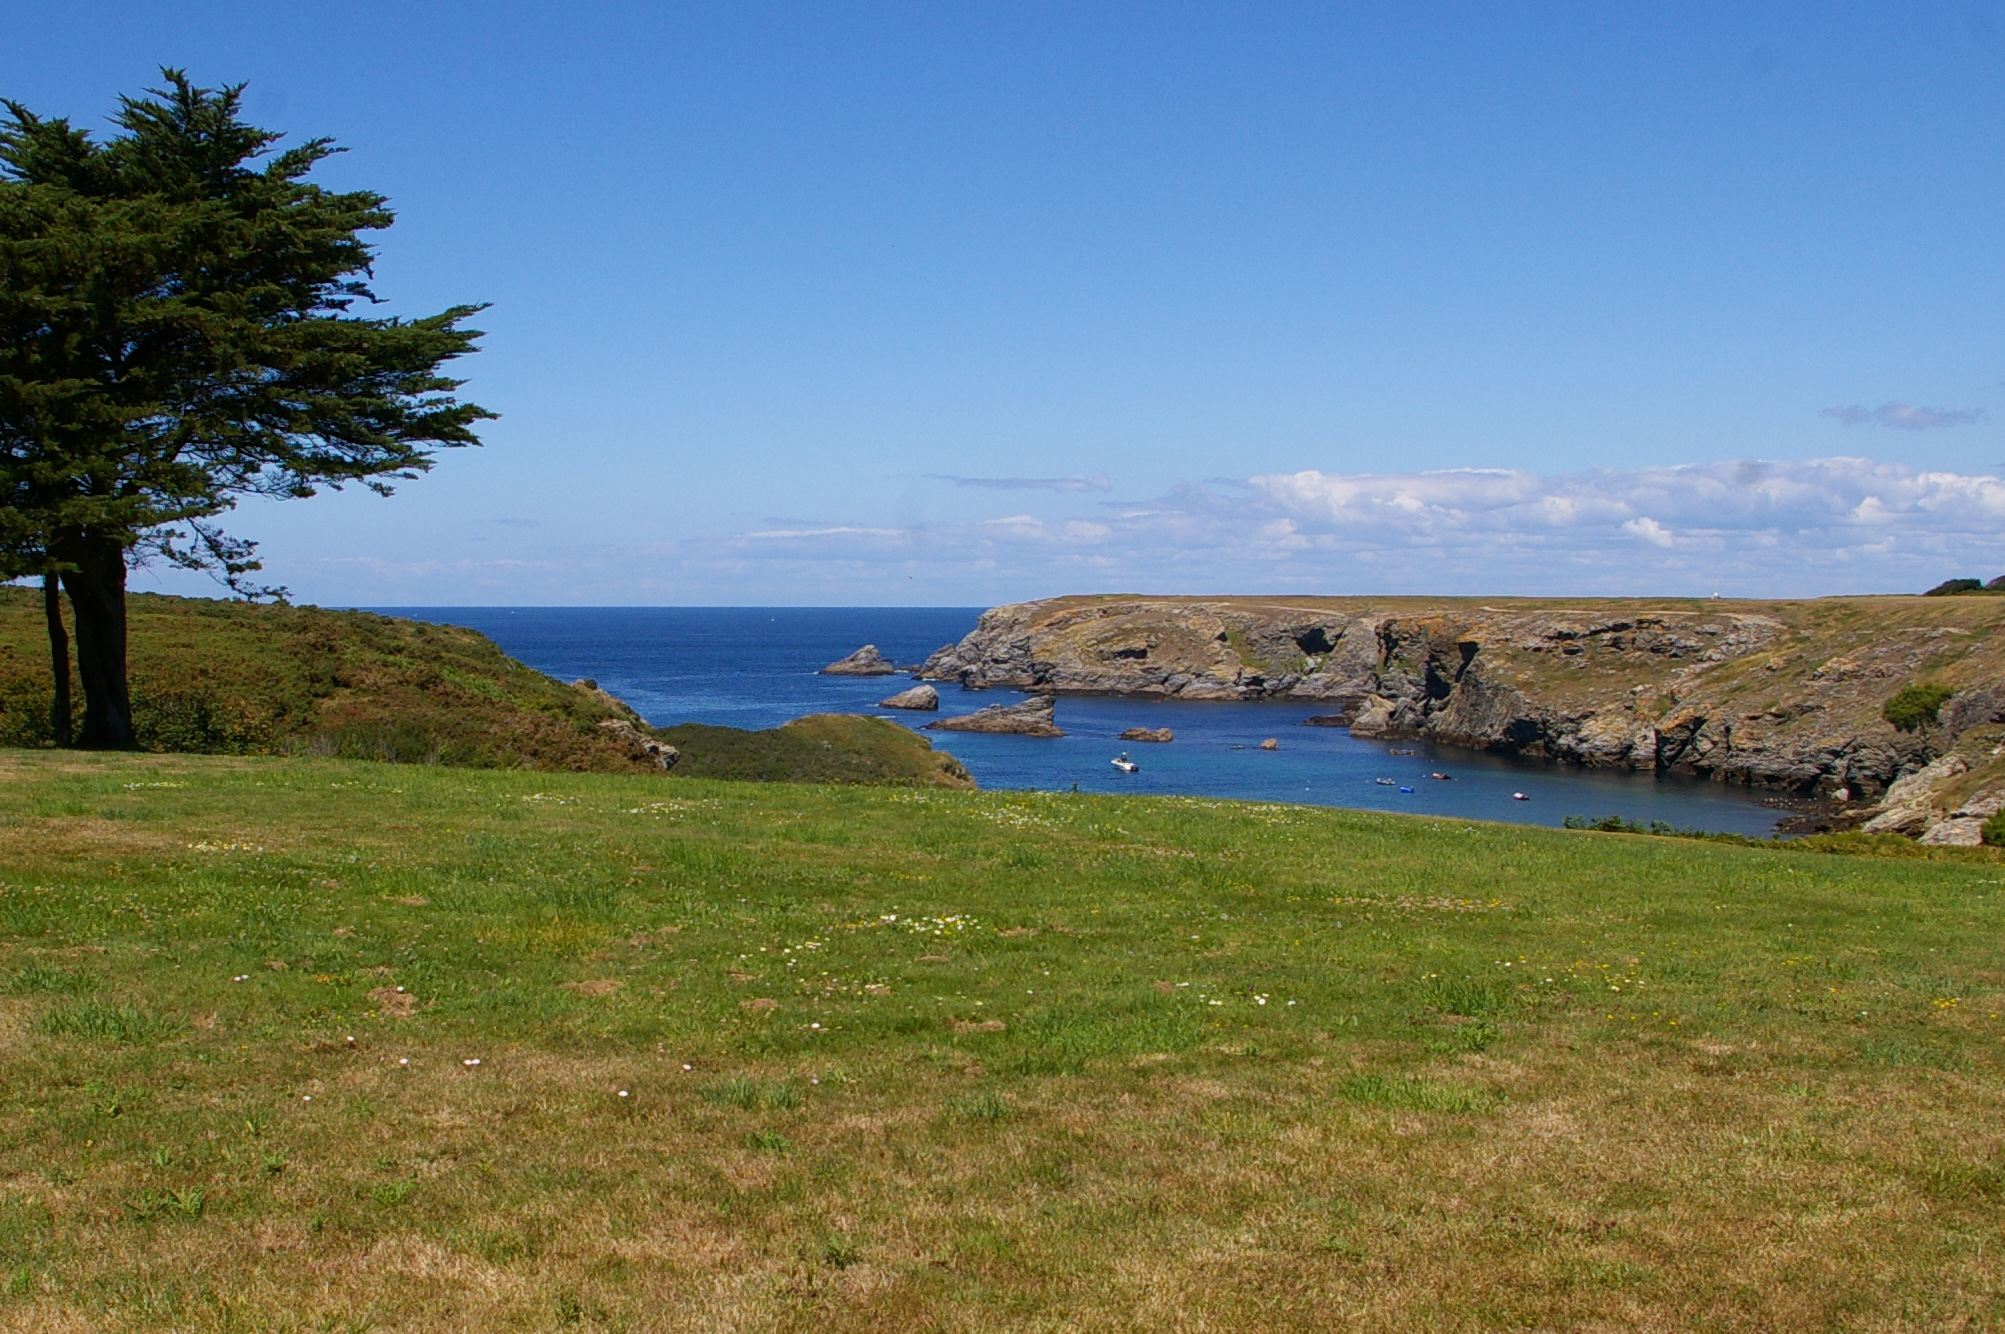 Property For Sale at Belle-Ile, South Brittany, full sea view and charm...